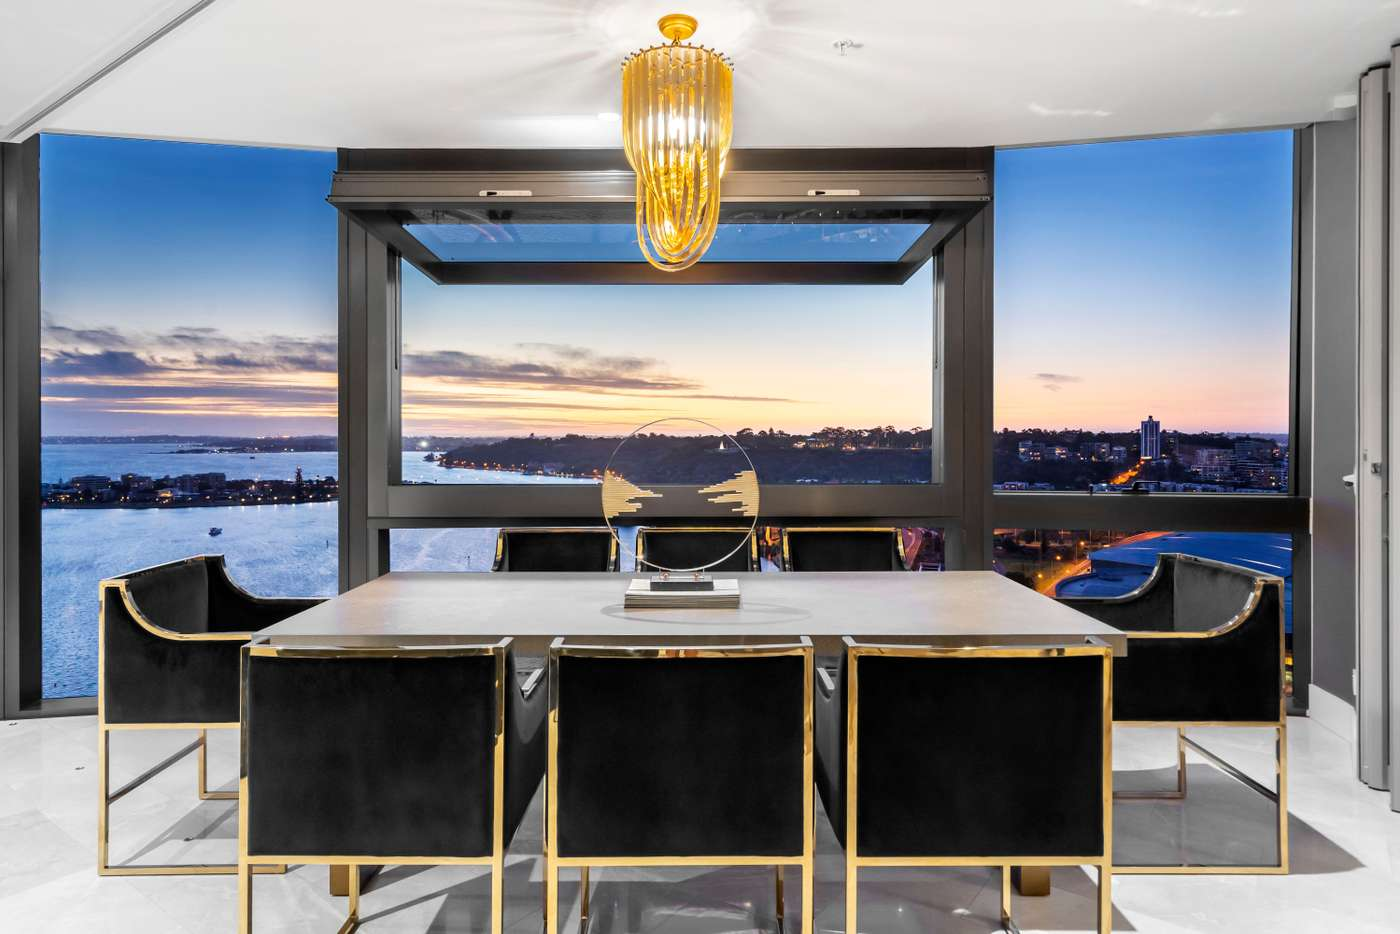 Main view of Homely apartment listing, 2505/1 Geoffrey Bolton Avenue, Perth WA 6000